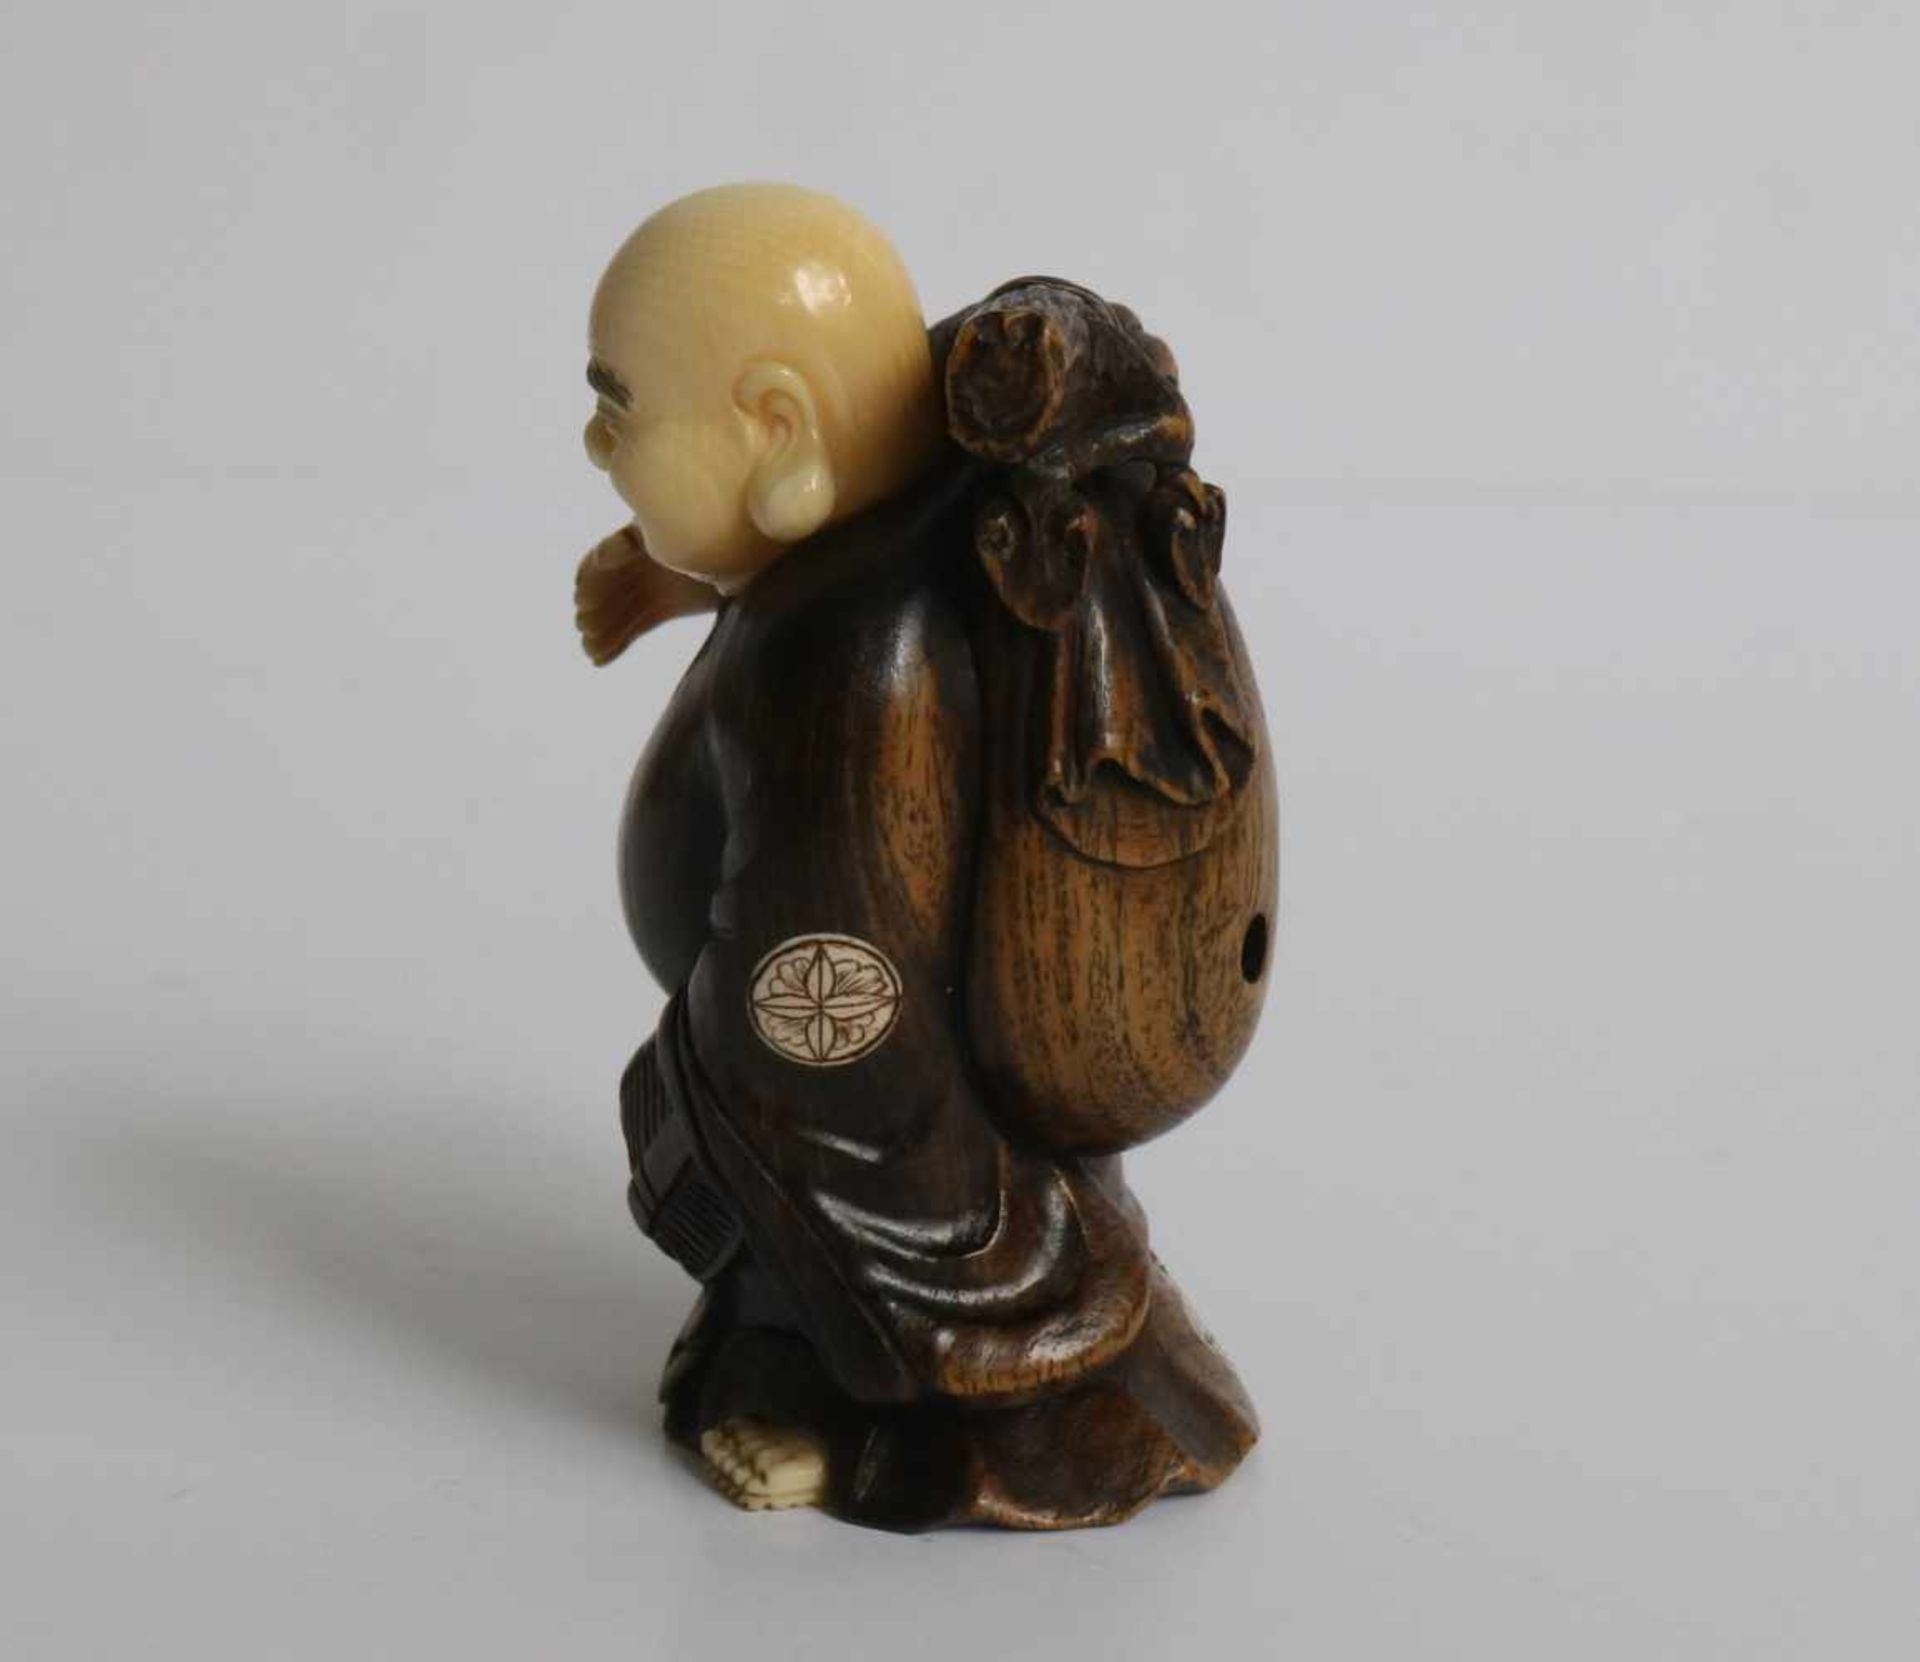 Los 483 - Boxwood and Ivory netsuke of a Motei carrying a large knapsack and gourd Japan, early 20th century